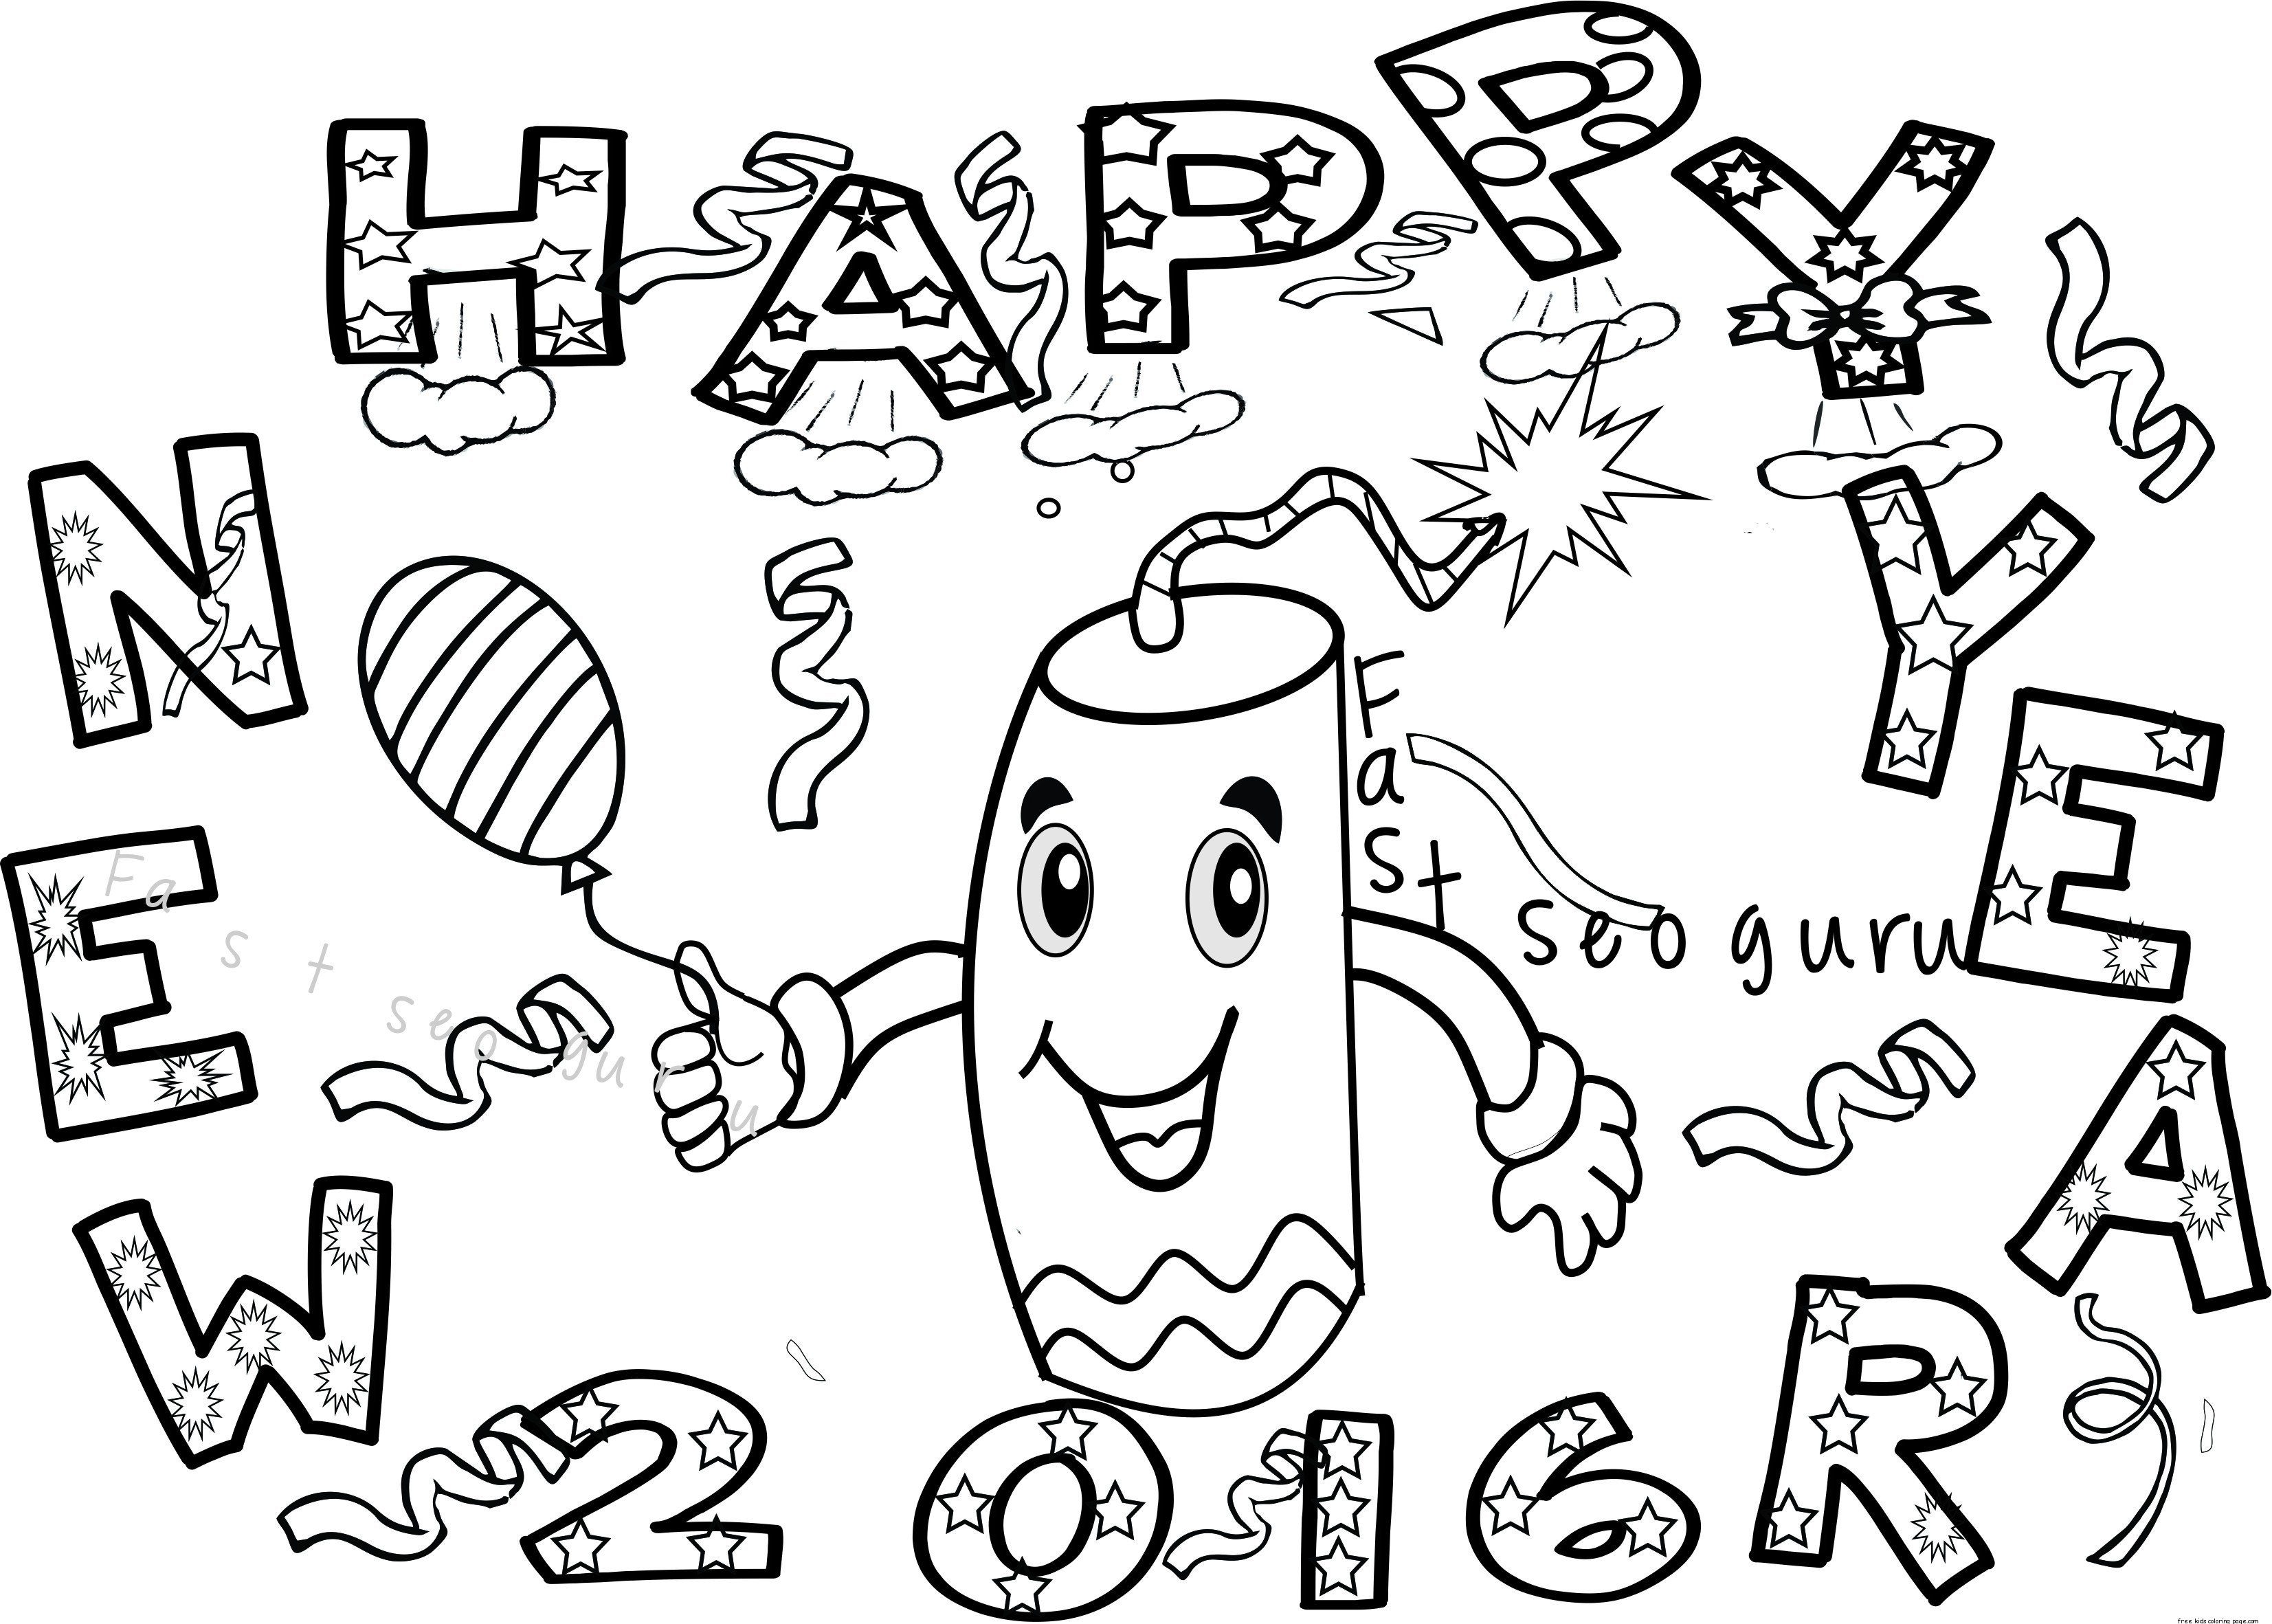 New Years Eve Coloring Pages Printable At Getcolorings